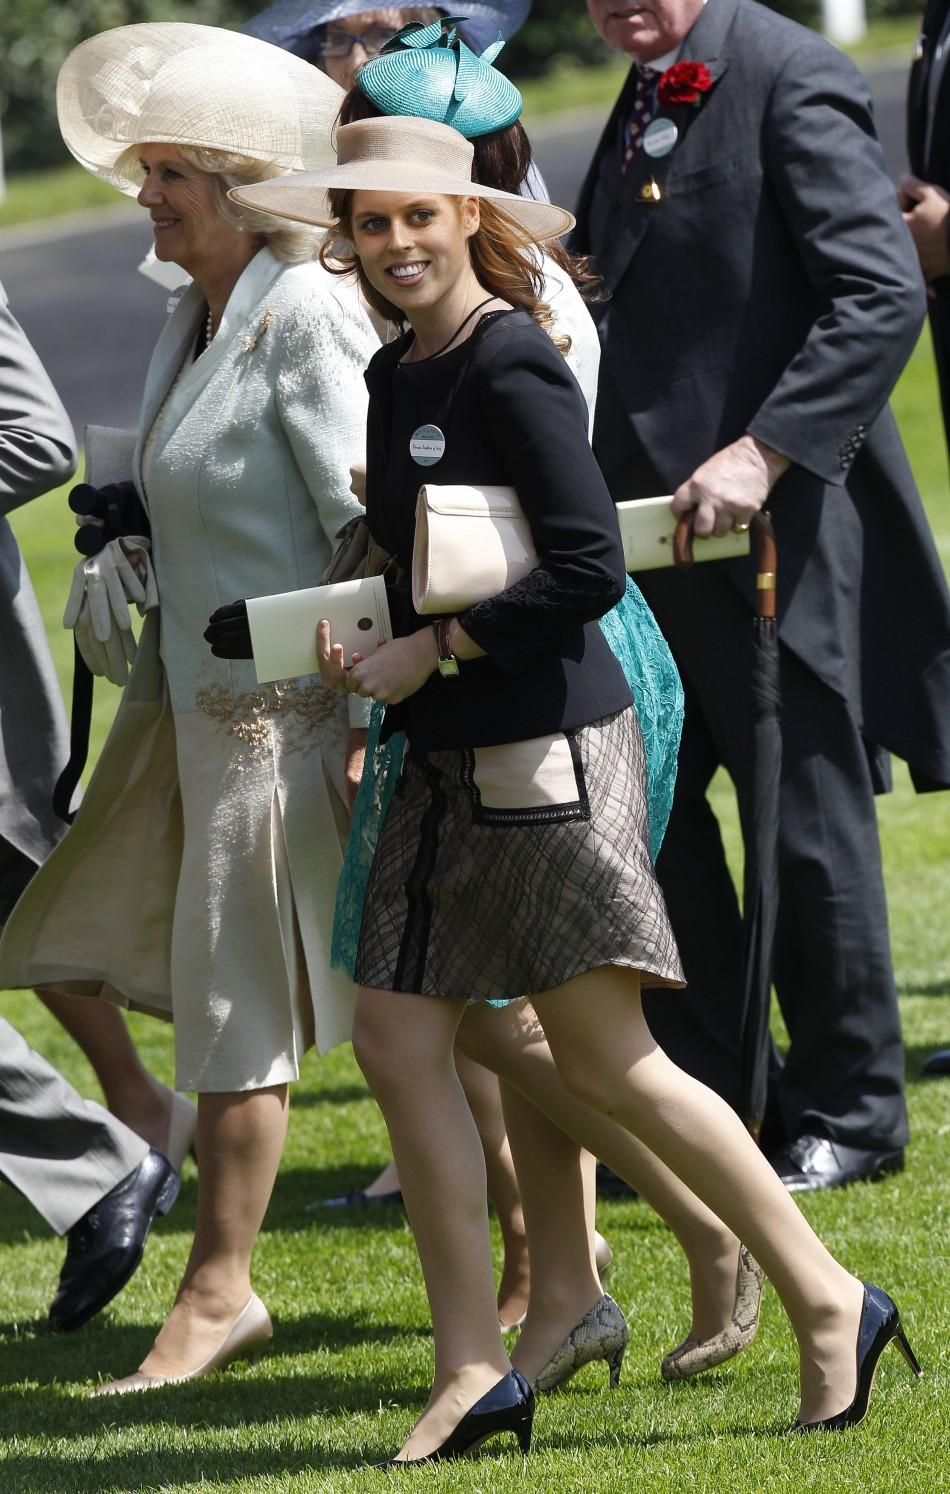 Royal Ascot (4 of 10)